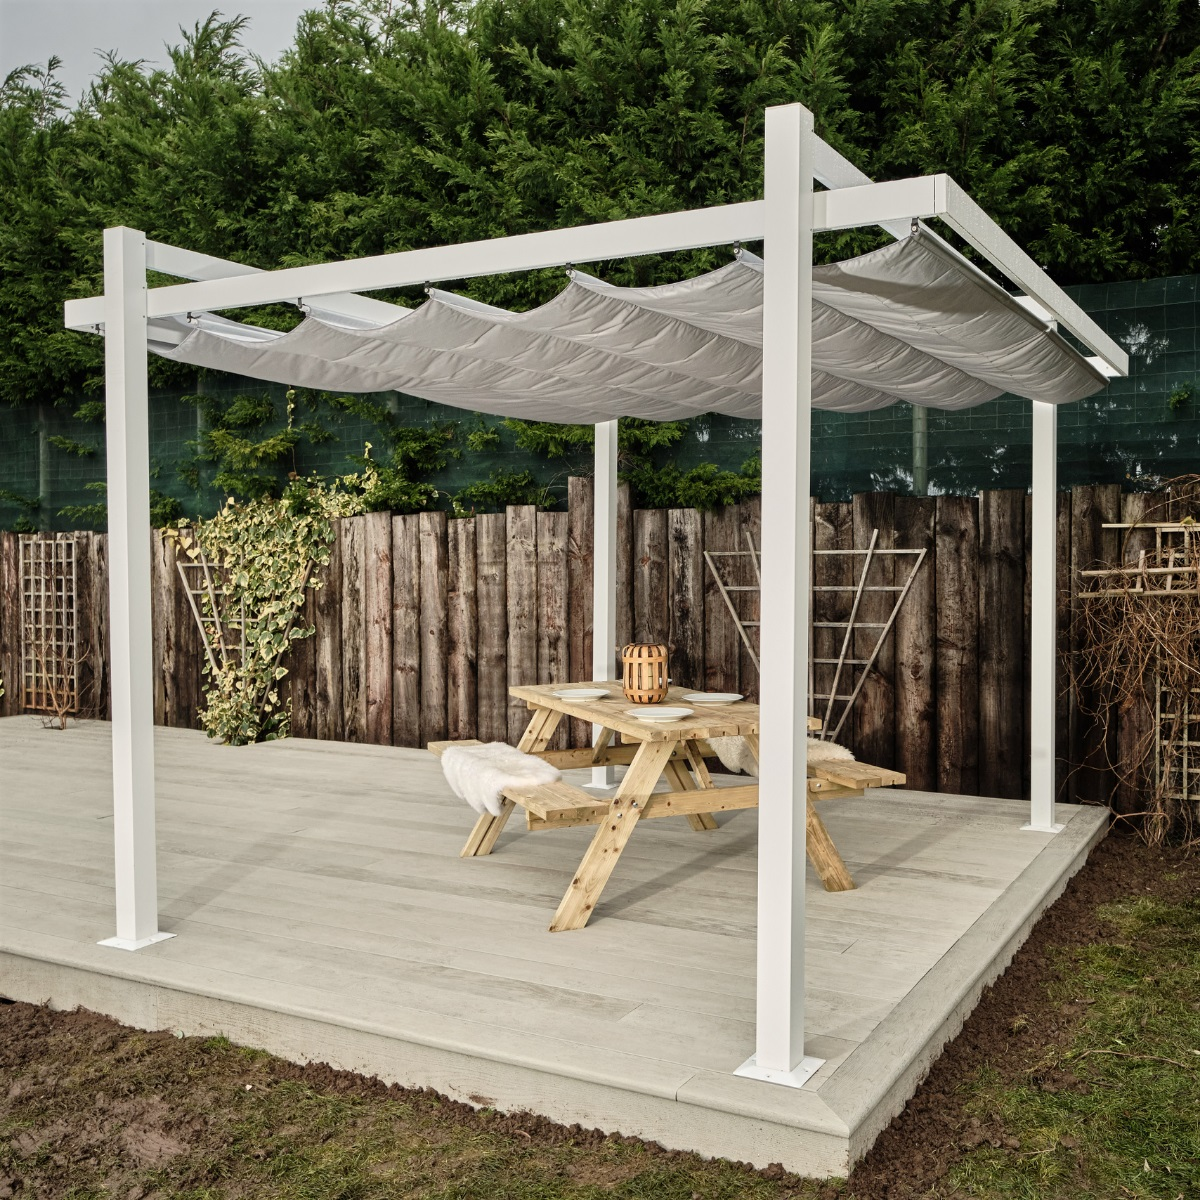 A white metal square gazebo with a concertina canvas roof that is retractable